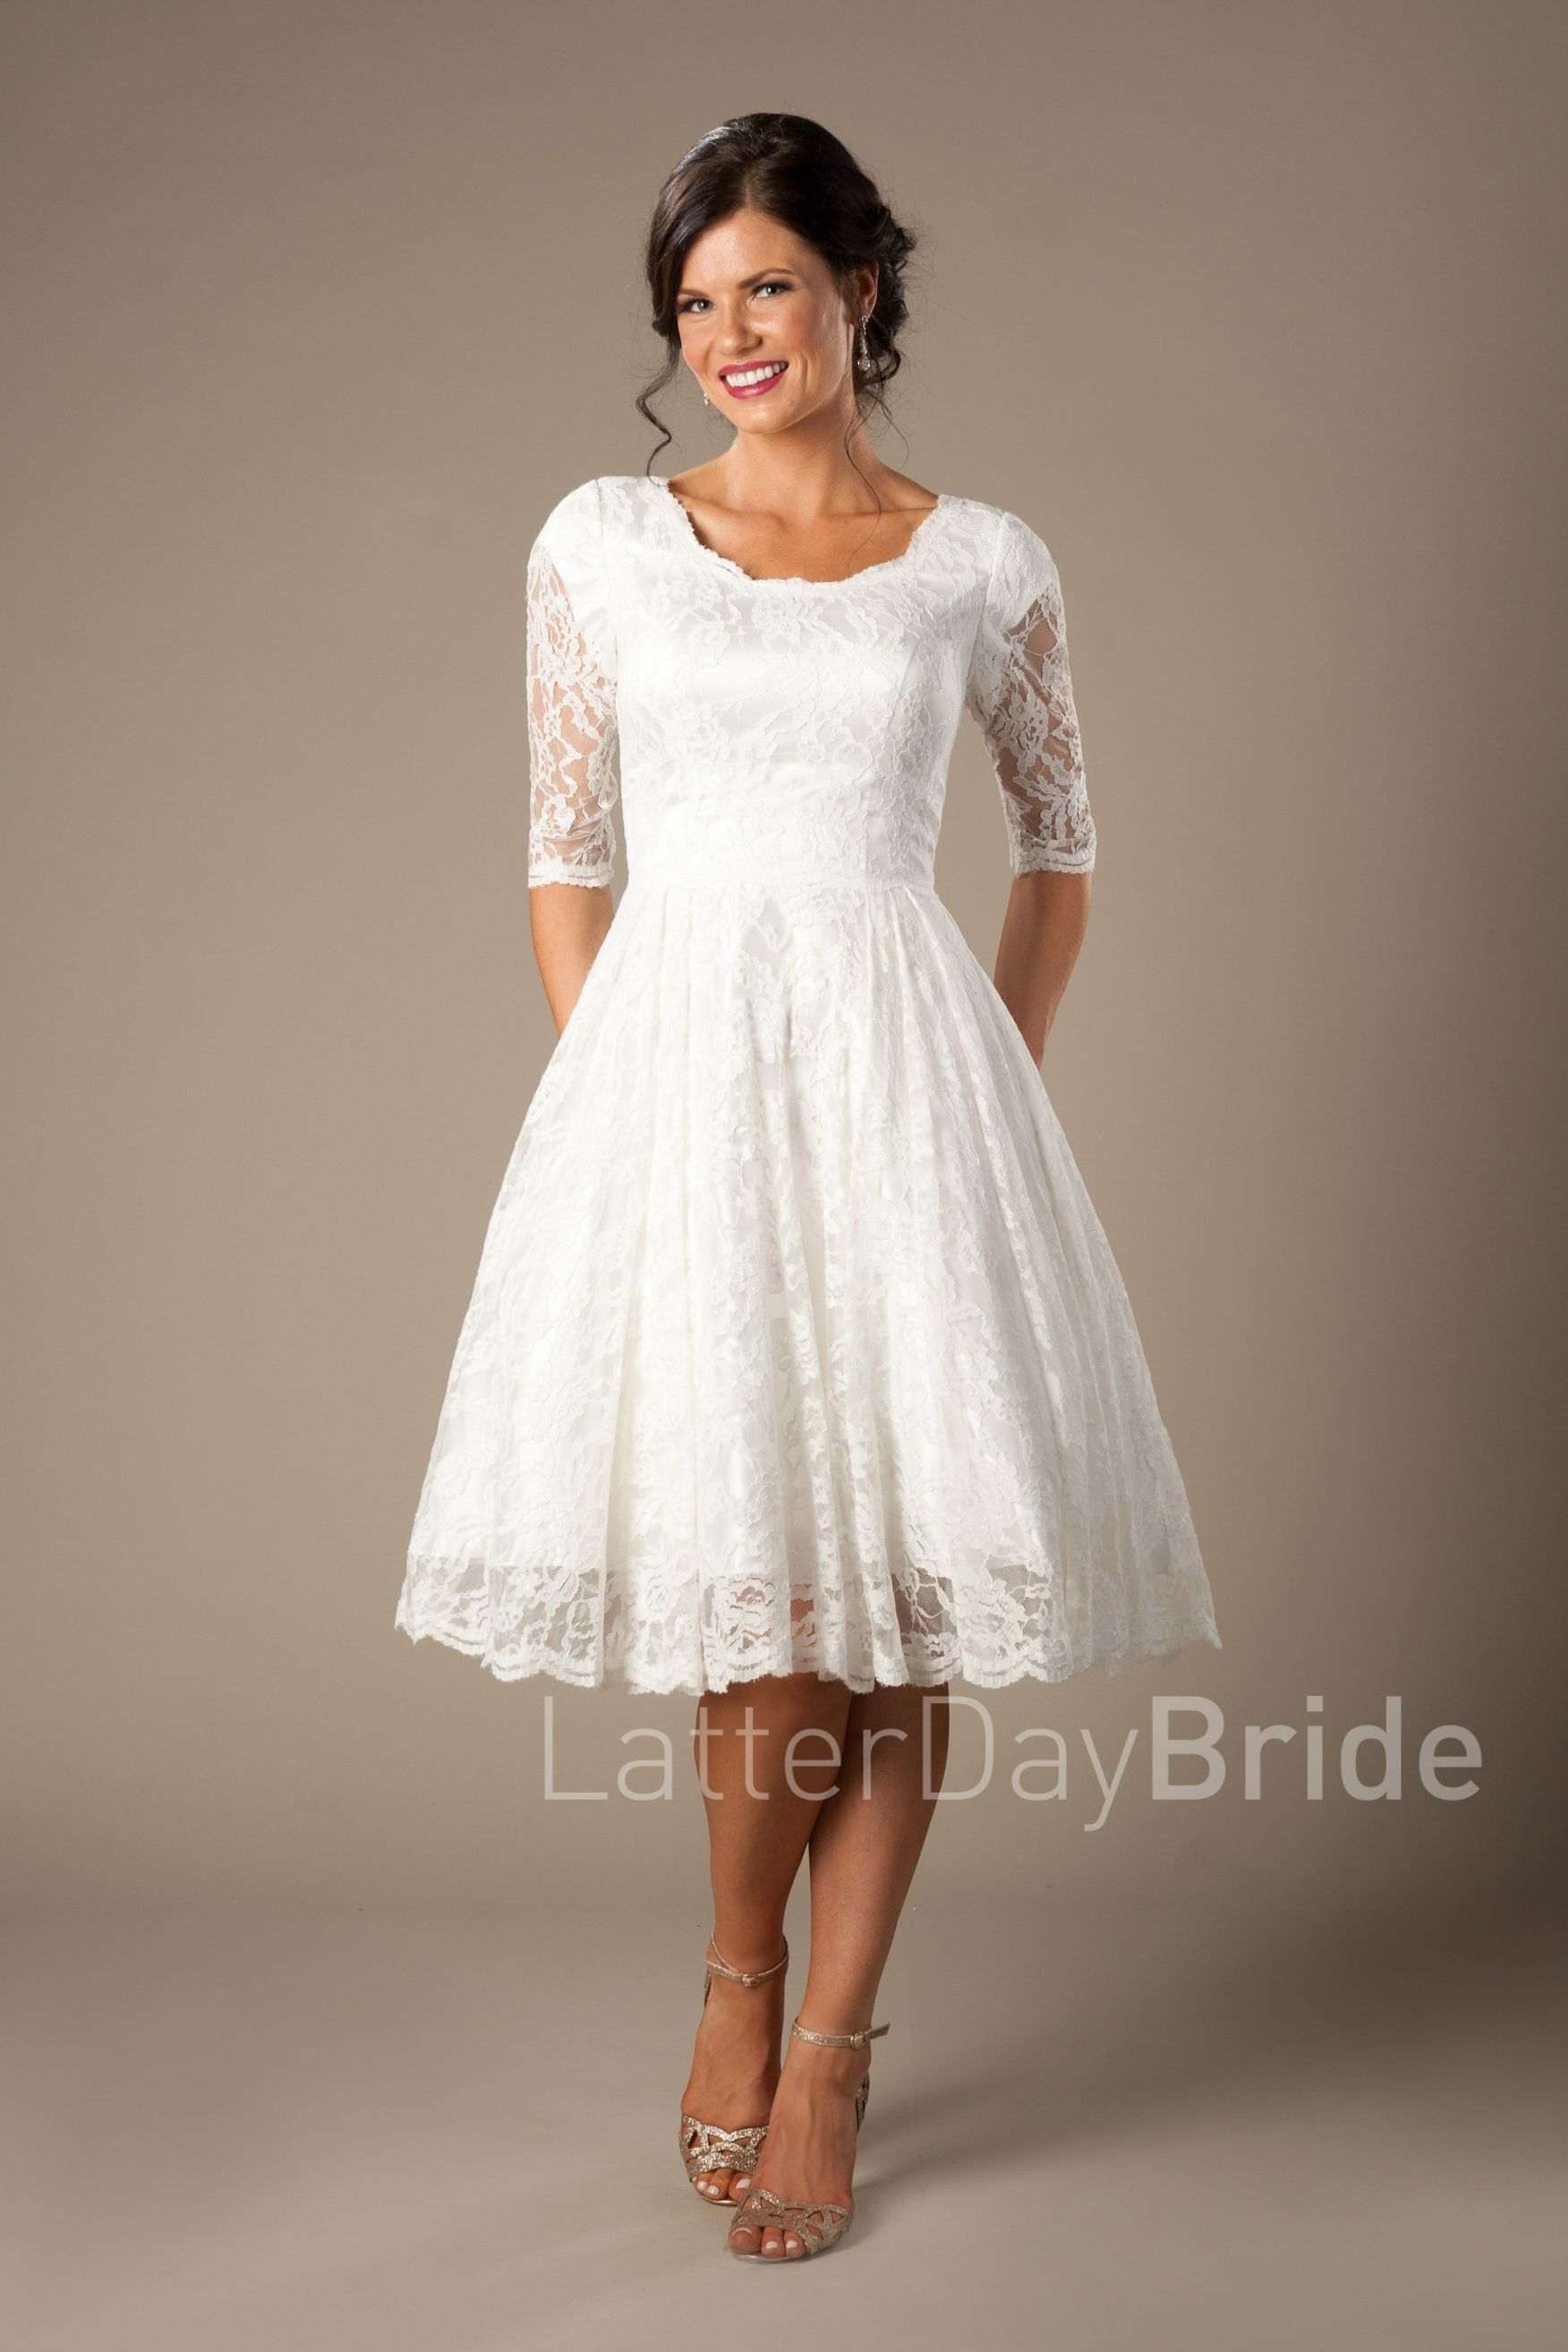 Quinn modest wedding dress latterdaybride prom slc for Modest wedding dresses under 500